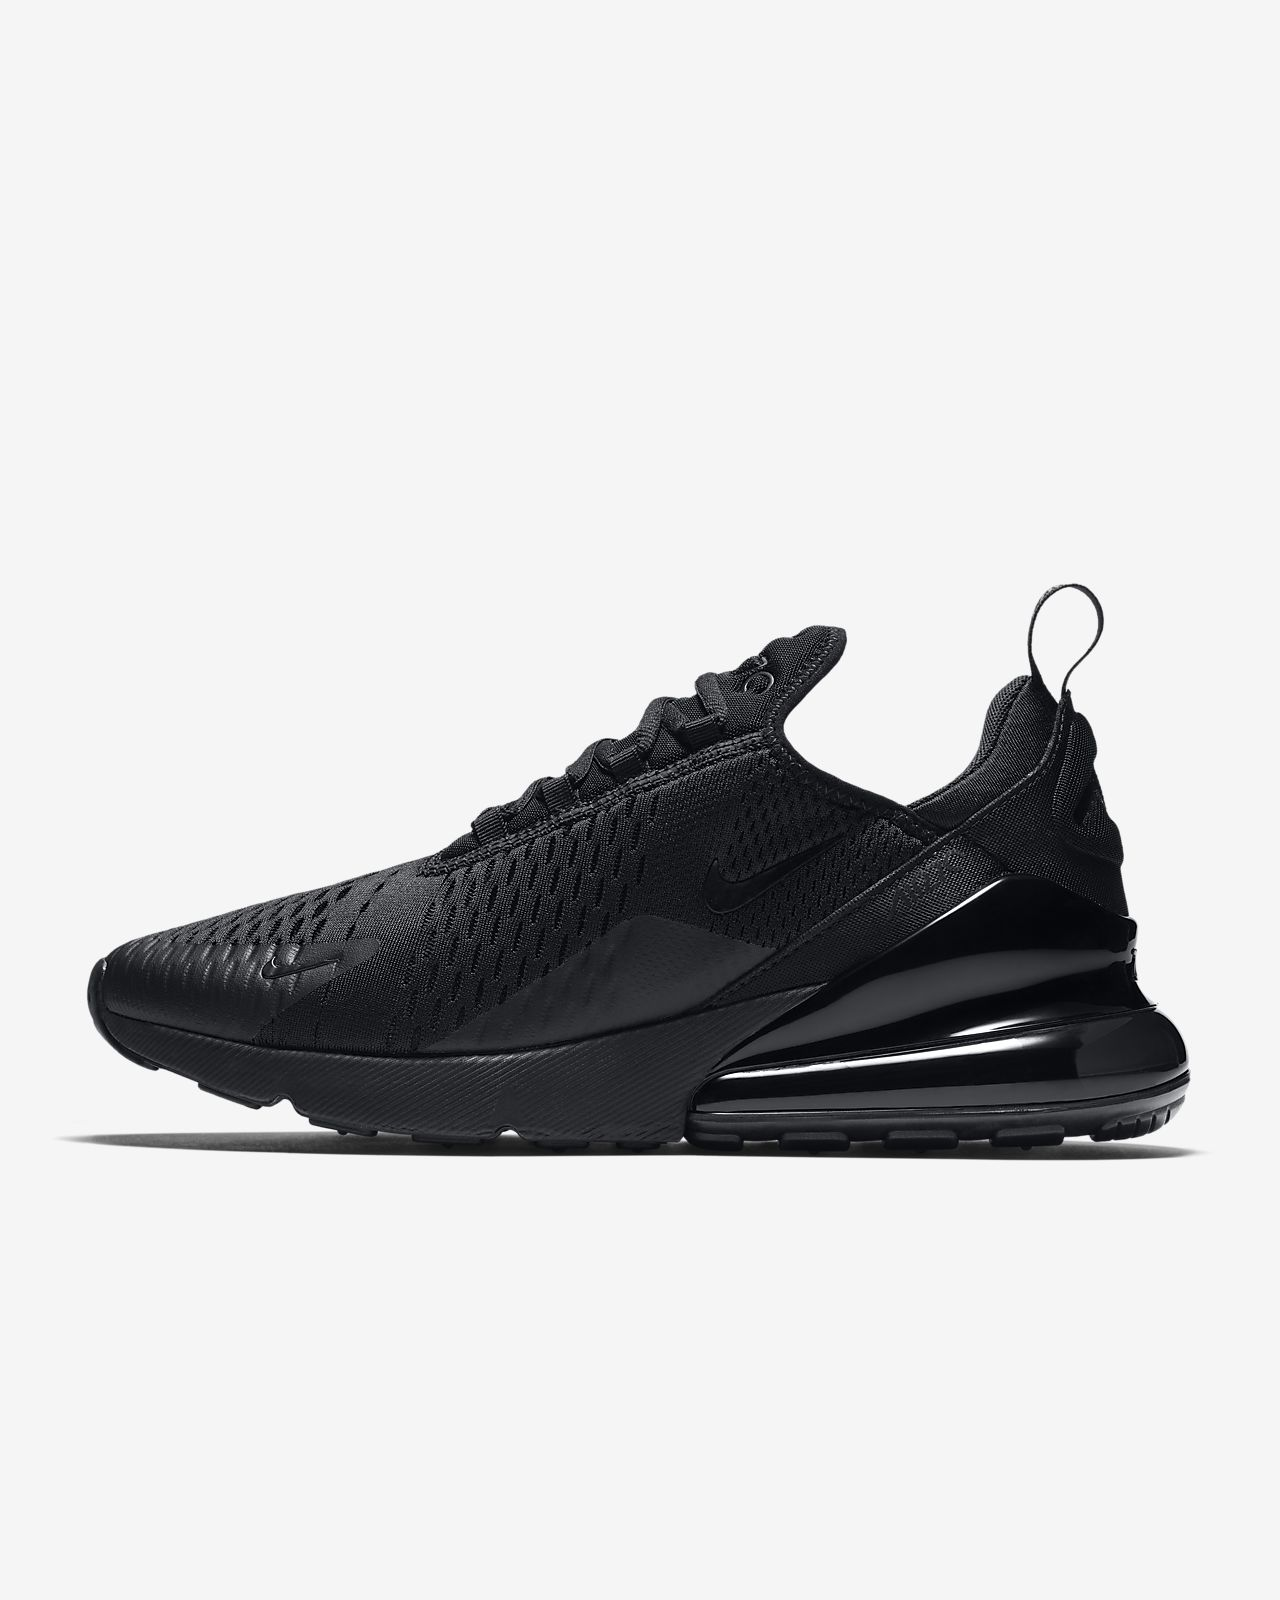 2a2564f4ca9 Nike Air Max 270 Men s Shoe. Nike.com AU